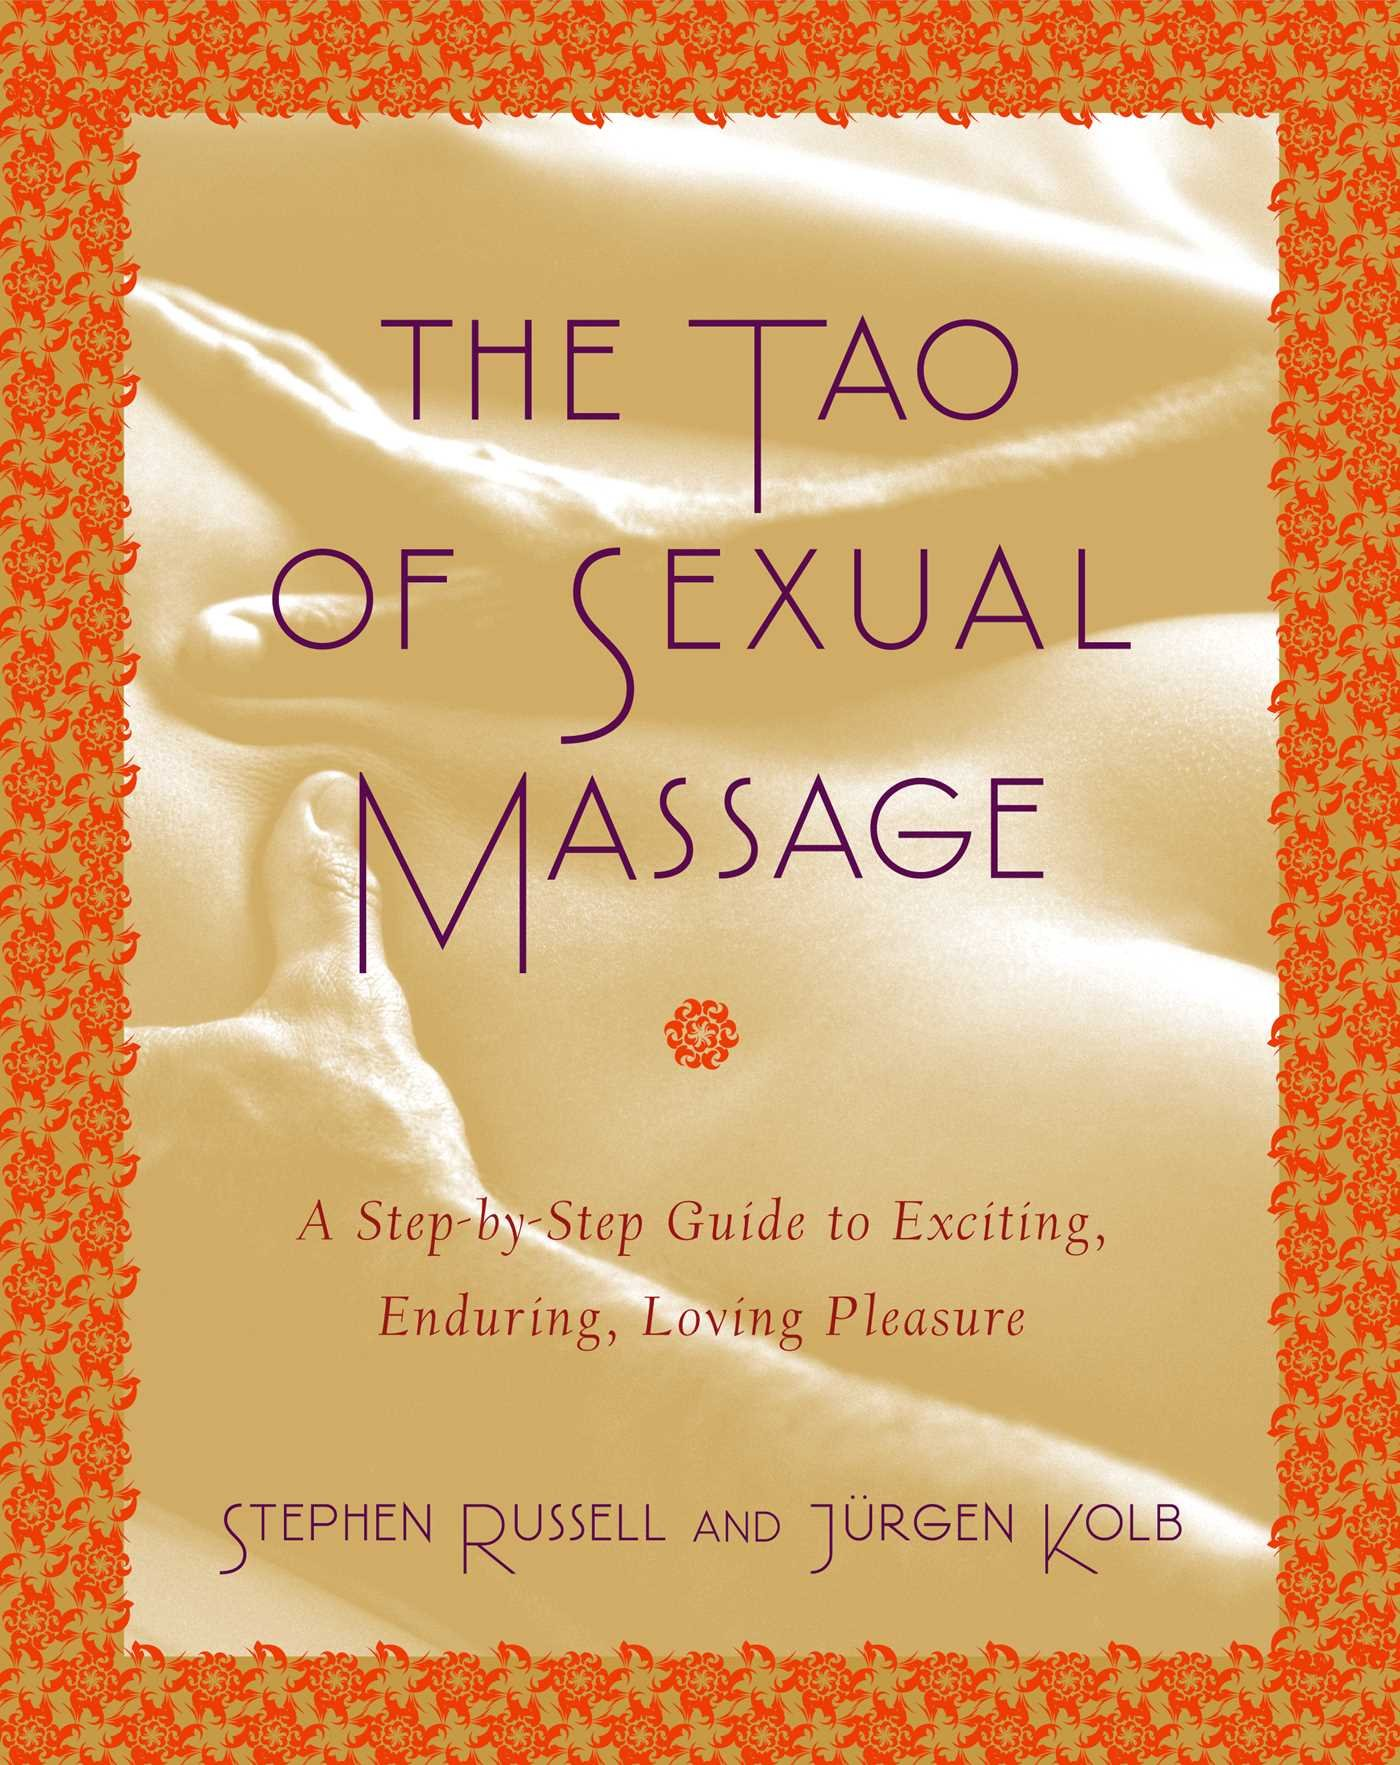 The Tao of Sexual Massage: A Step-by-Step Guide to Exciting, Enduring, Loving Pleasure por Stephen Russell